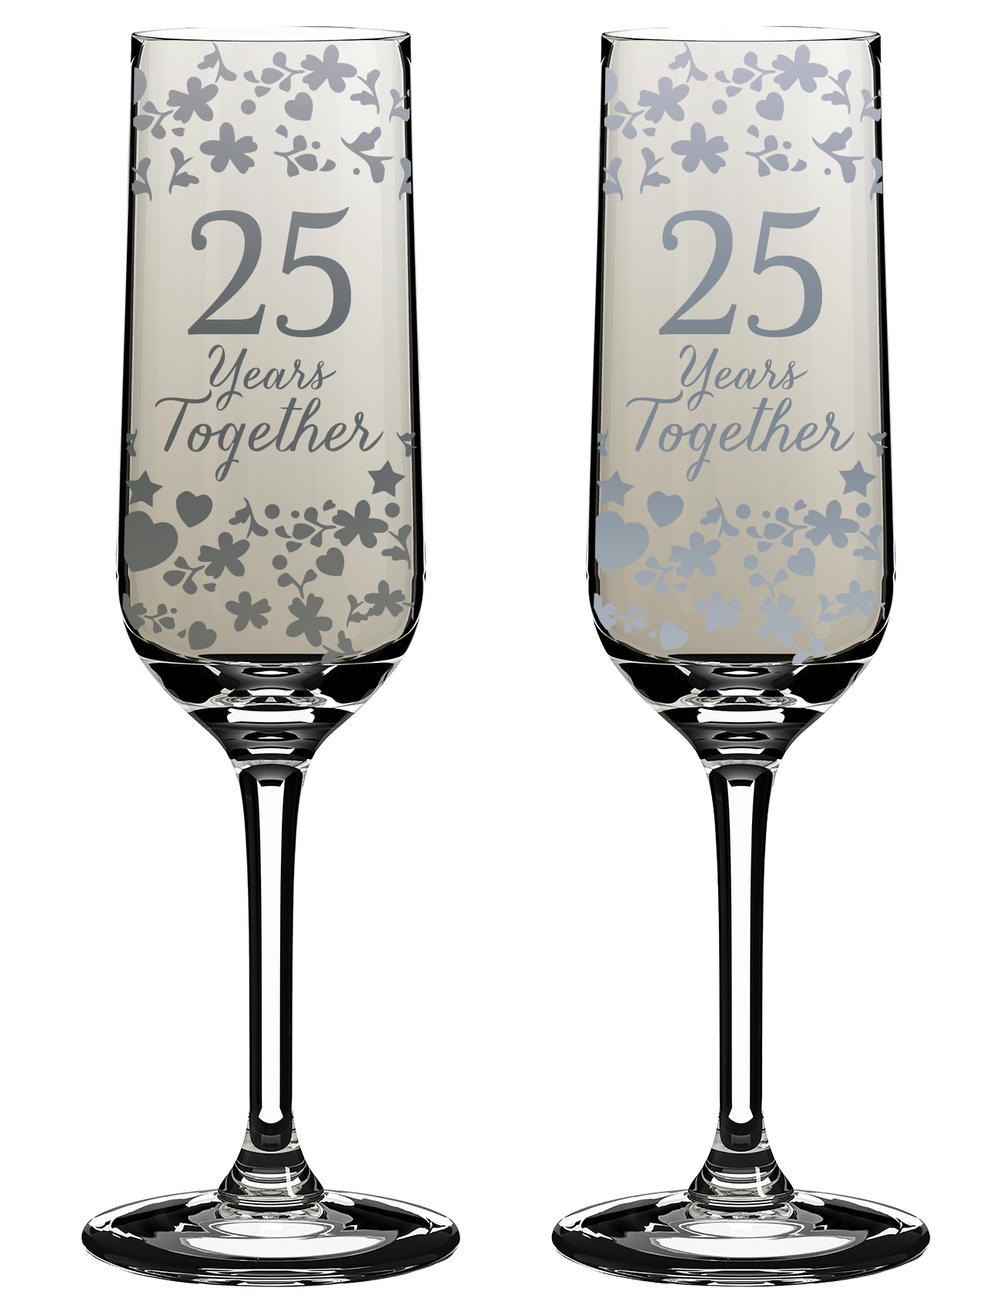 25 Years Together 25th Anniversary Champagne Flutes In Gift Box